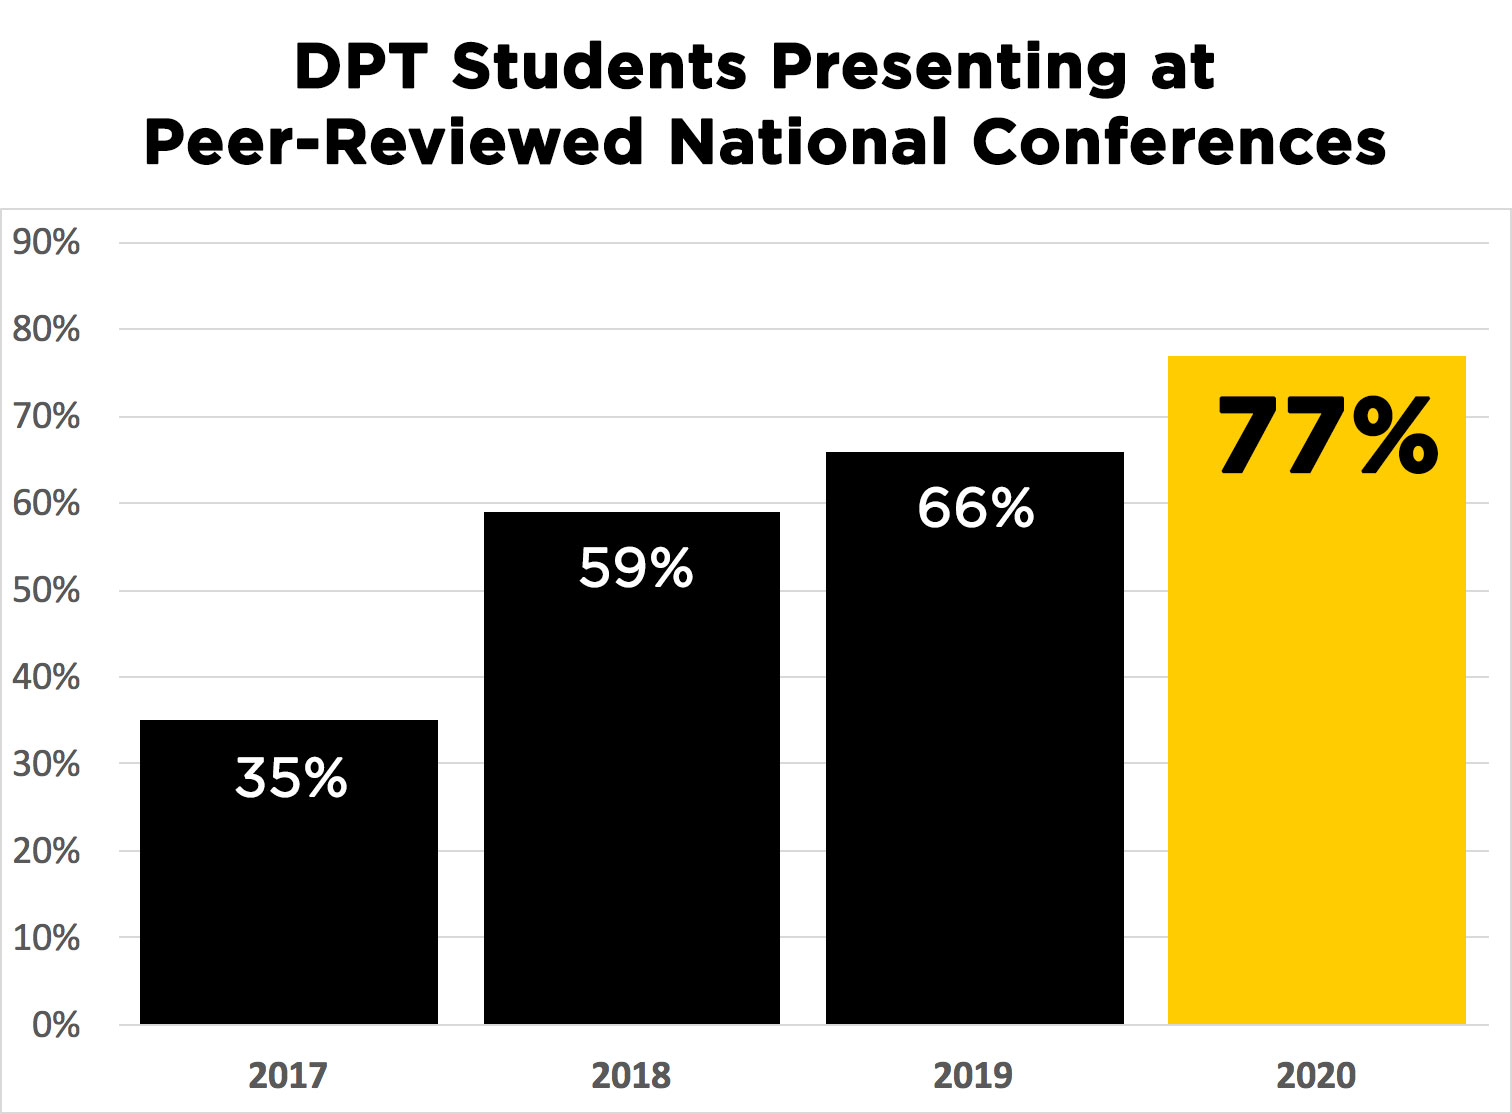 DPT Students Increase Dissemination of Research Through Peer-Reviewed National Presentations